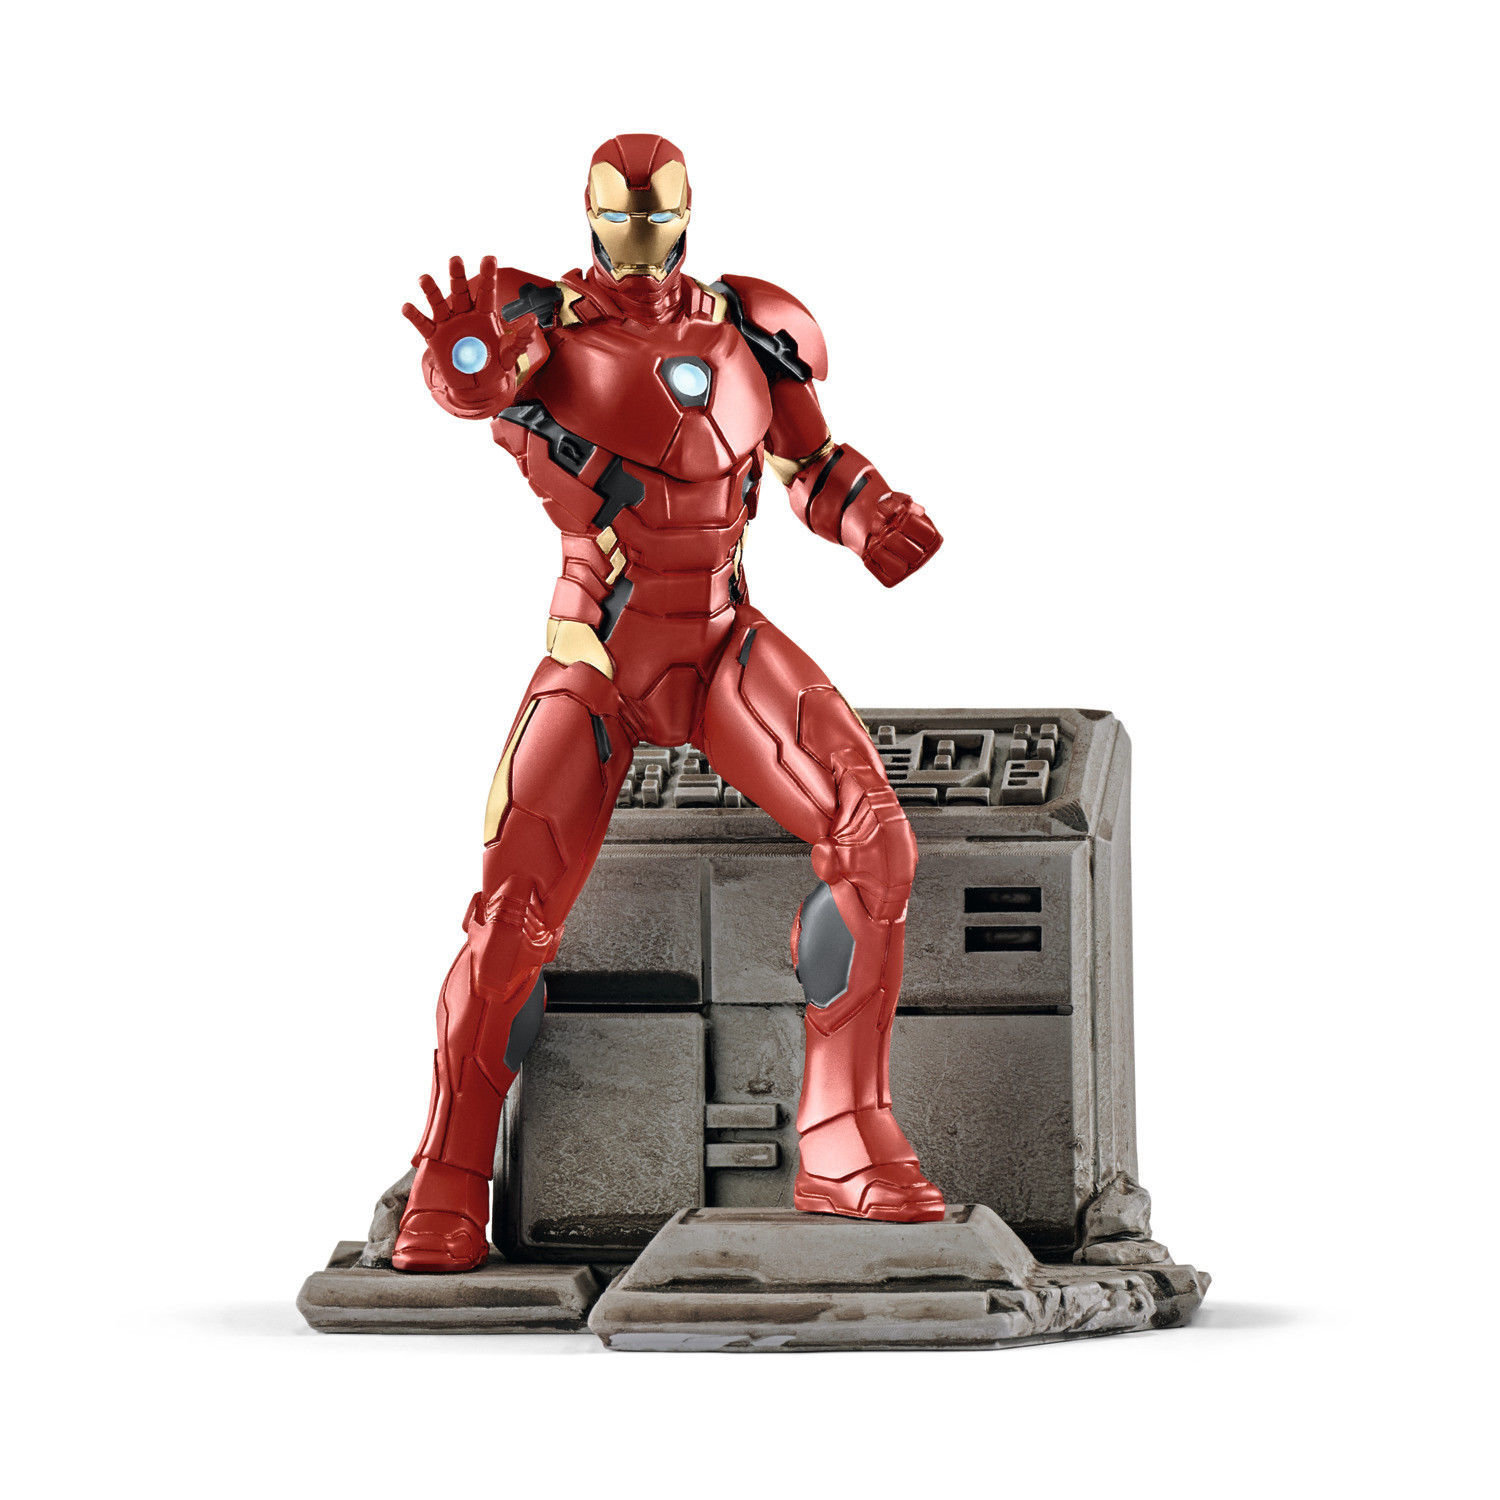 Iron Man Marvel Figurine from New in Box Schleich 21501